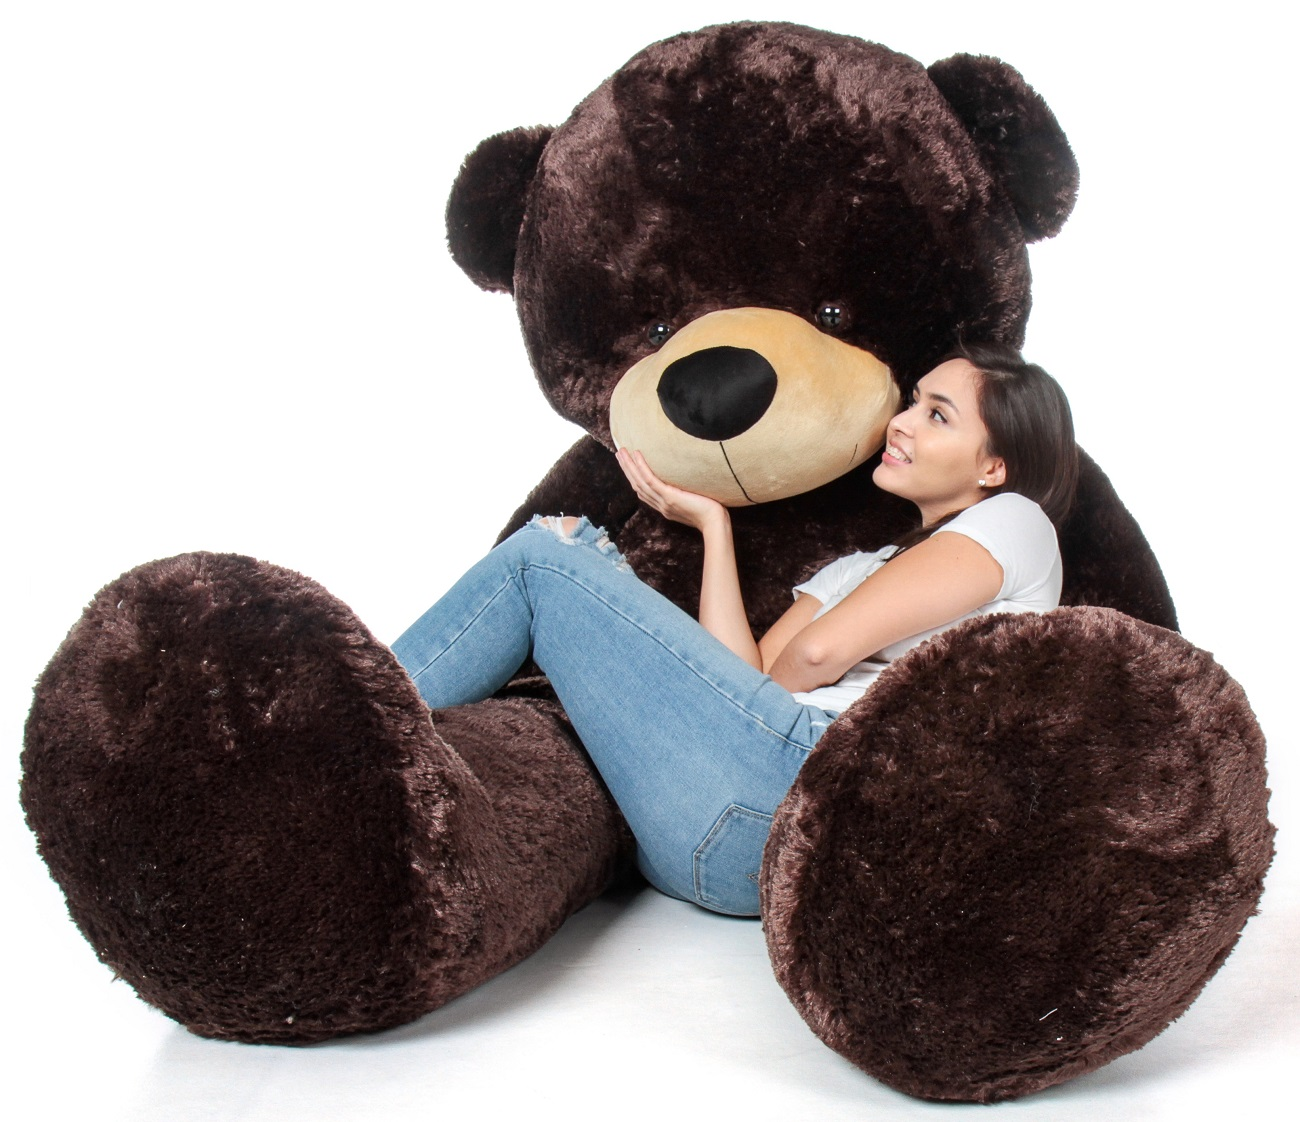 chocolate-brown-giant-teddy-bear-world-s-biggest-teddy-bear-in-chocolate-brown.jpg